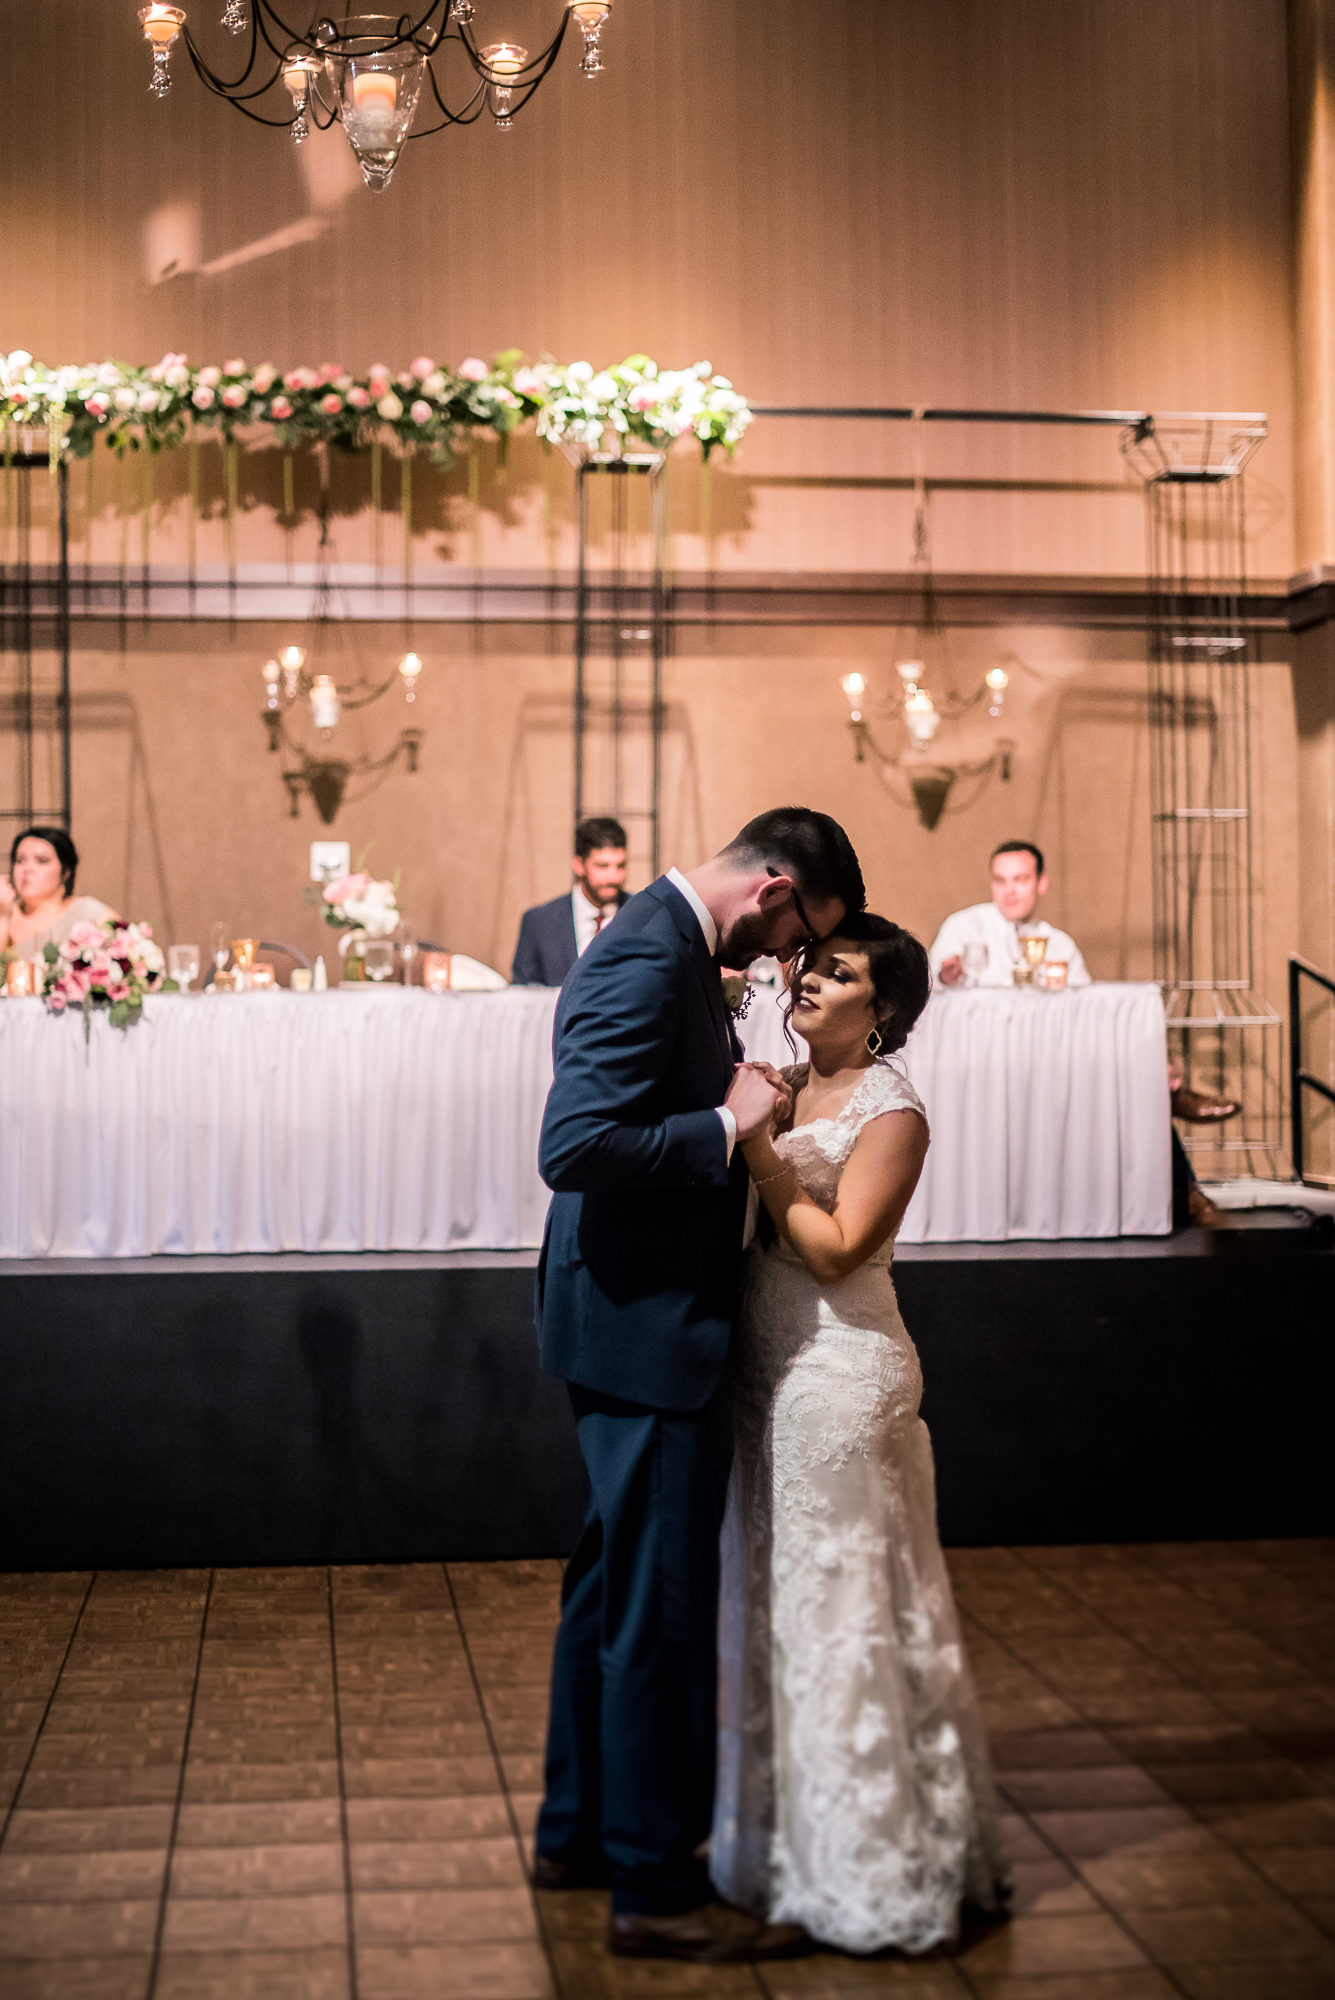 Melissa Cervantes Photography _ Kelsey + Ben Junebug Weddings Submission-123.jpg